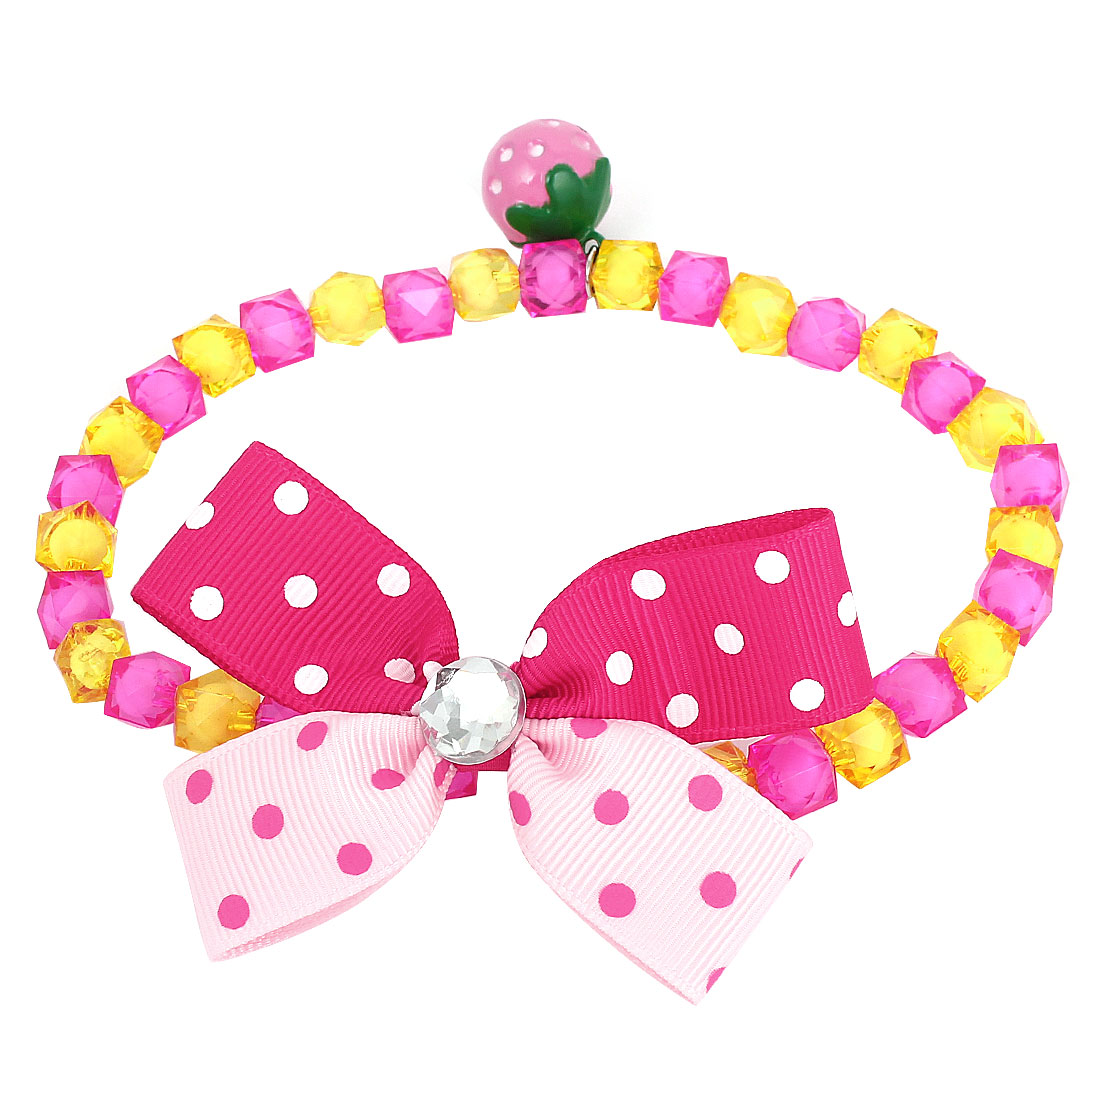 Metal Bell Pendant Bowtie Accent Pet Dog Plastic Beads Collar Necklace Fuchsia Yellow M